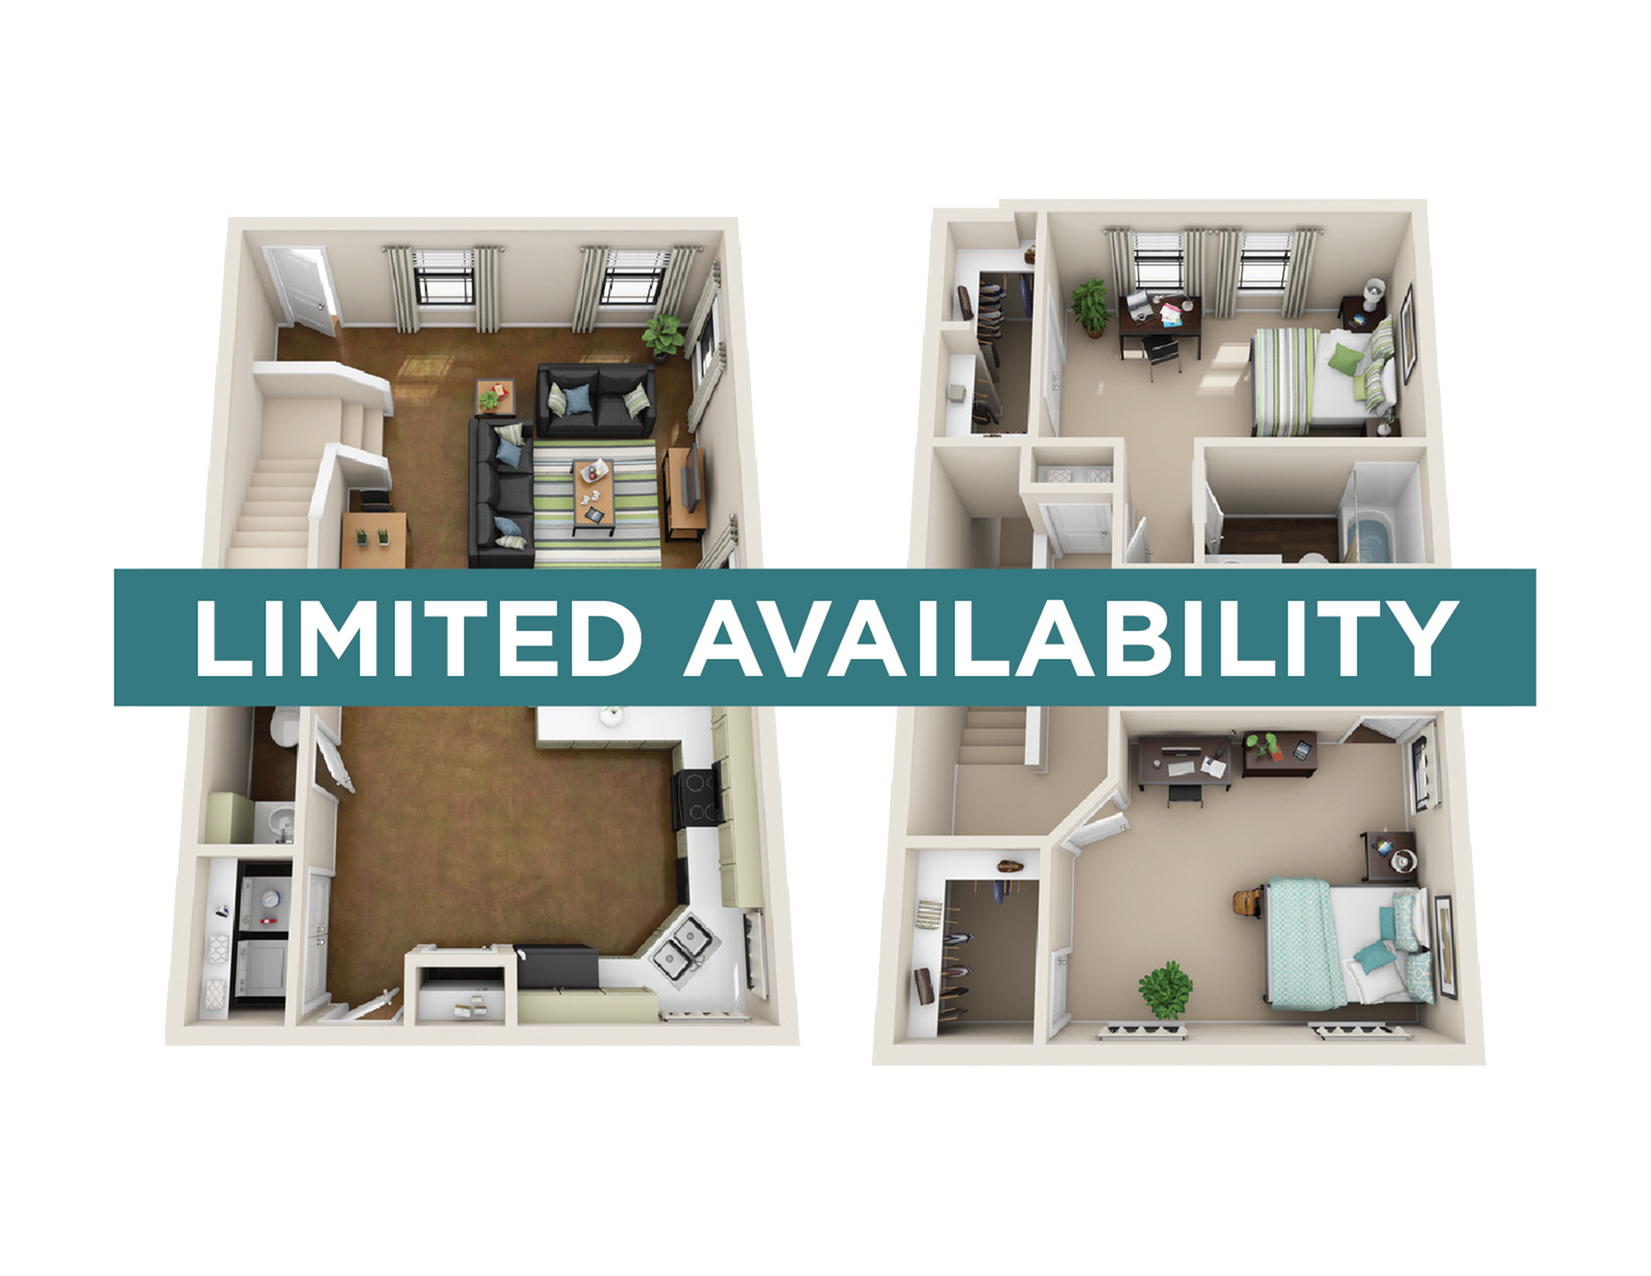 2BR/2.5BA - Unfurnished - limited availability